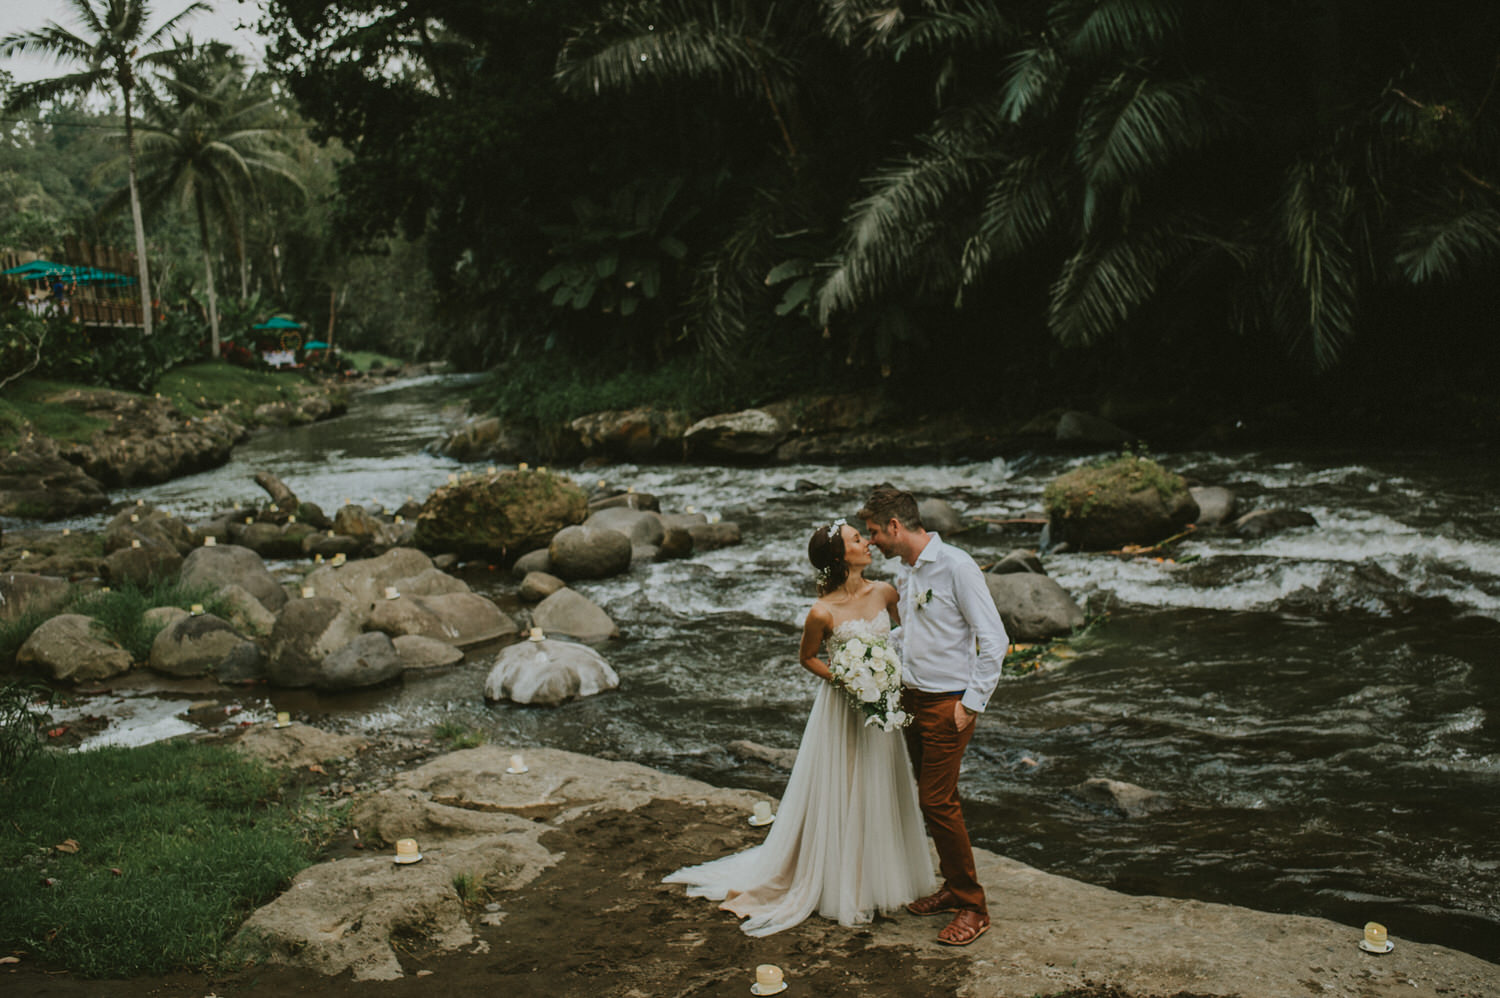 bali-wedding-ubud-wedding-wedding-destination-diktatphotography-kadek-artayasa-elaine-and-glenn-099